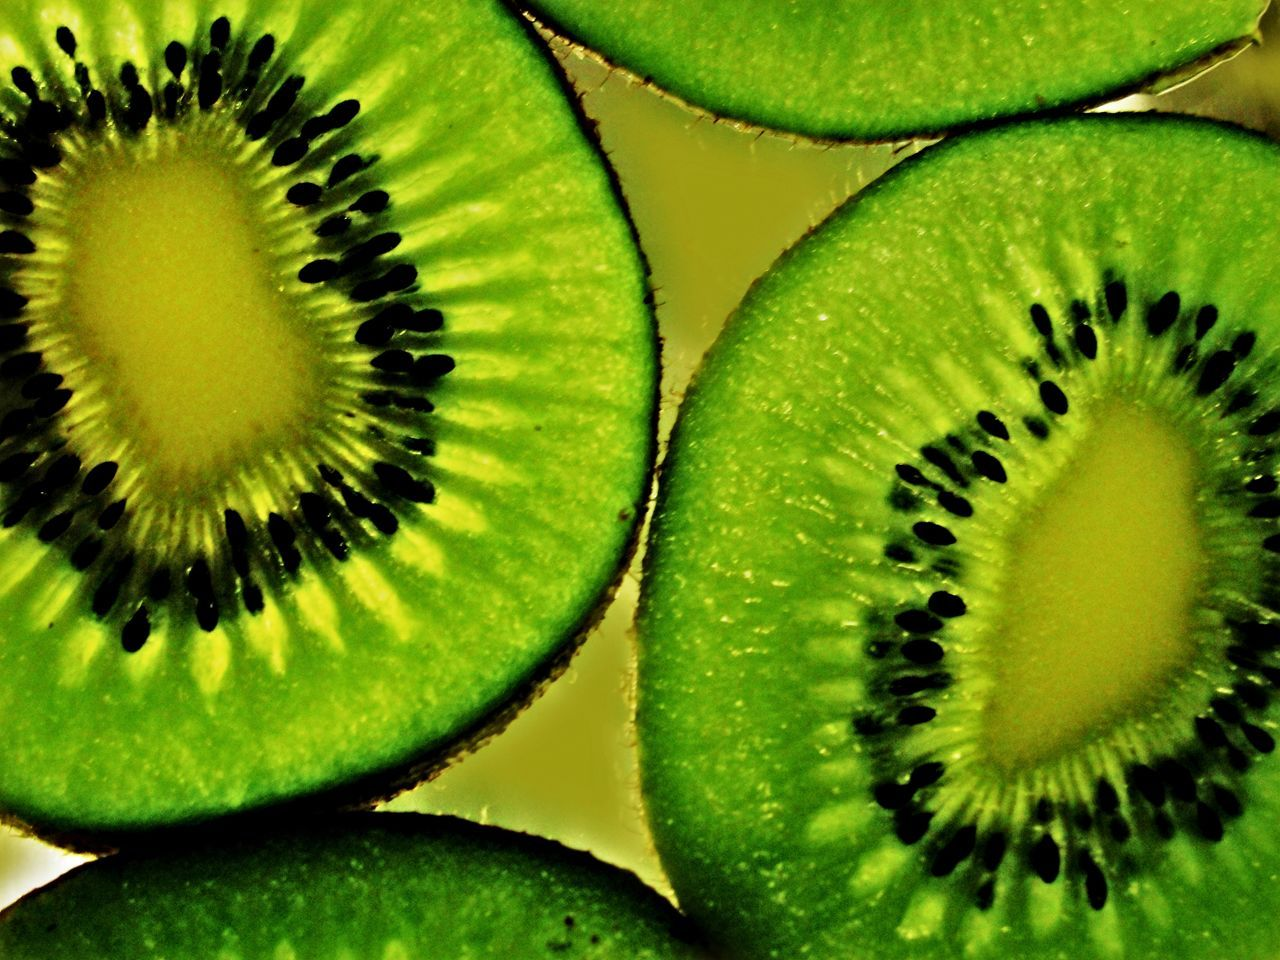 Macro Photography Kiwifruit Use Of Flash Backlit Subject